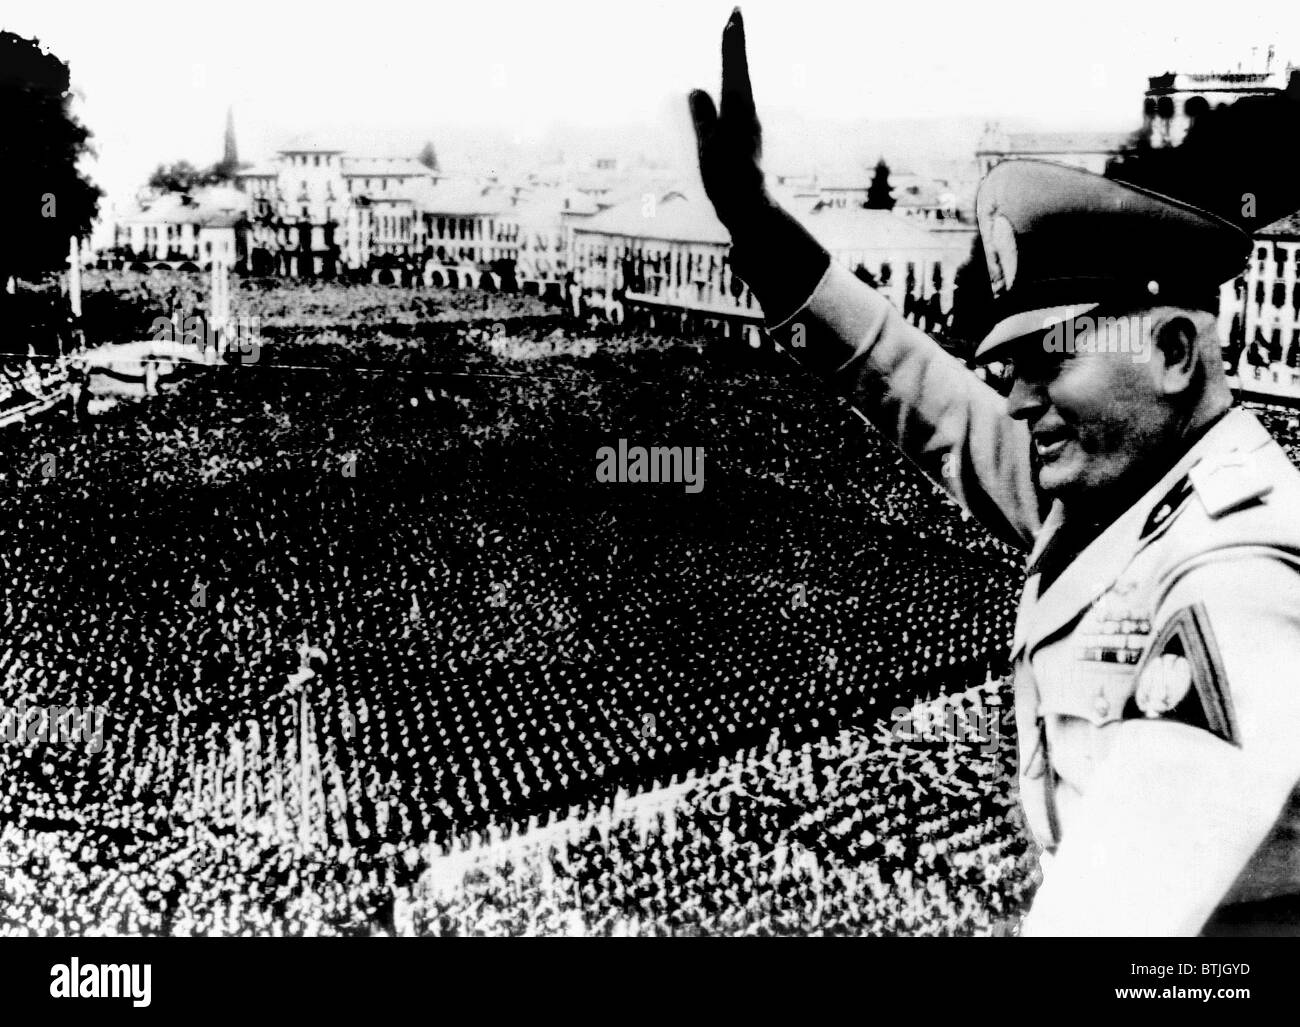 benito mussolini addressing a crowd in padua italy july 1943